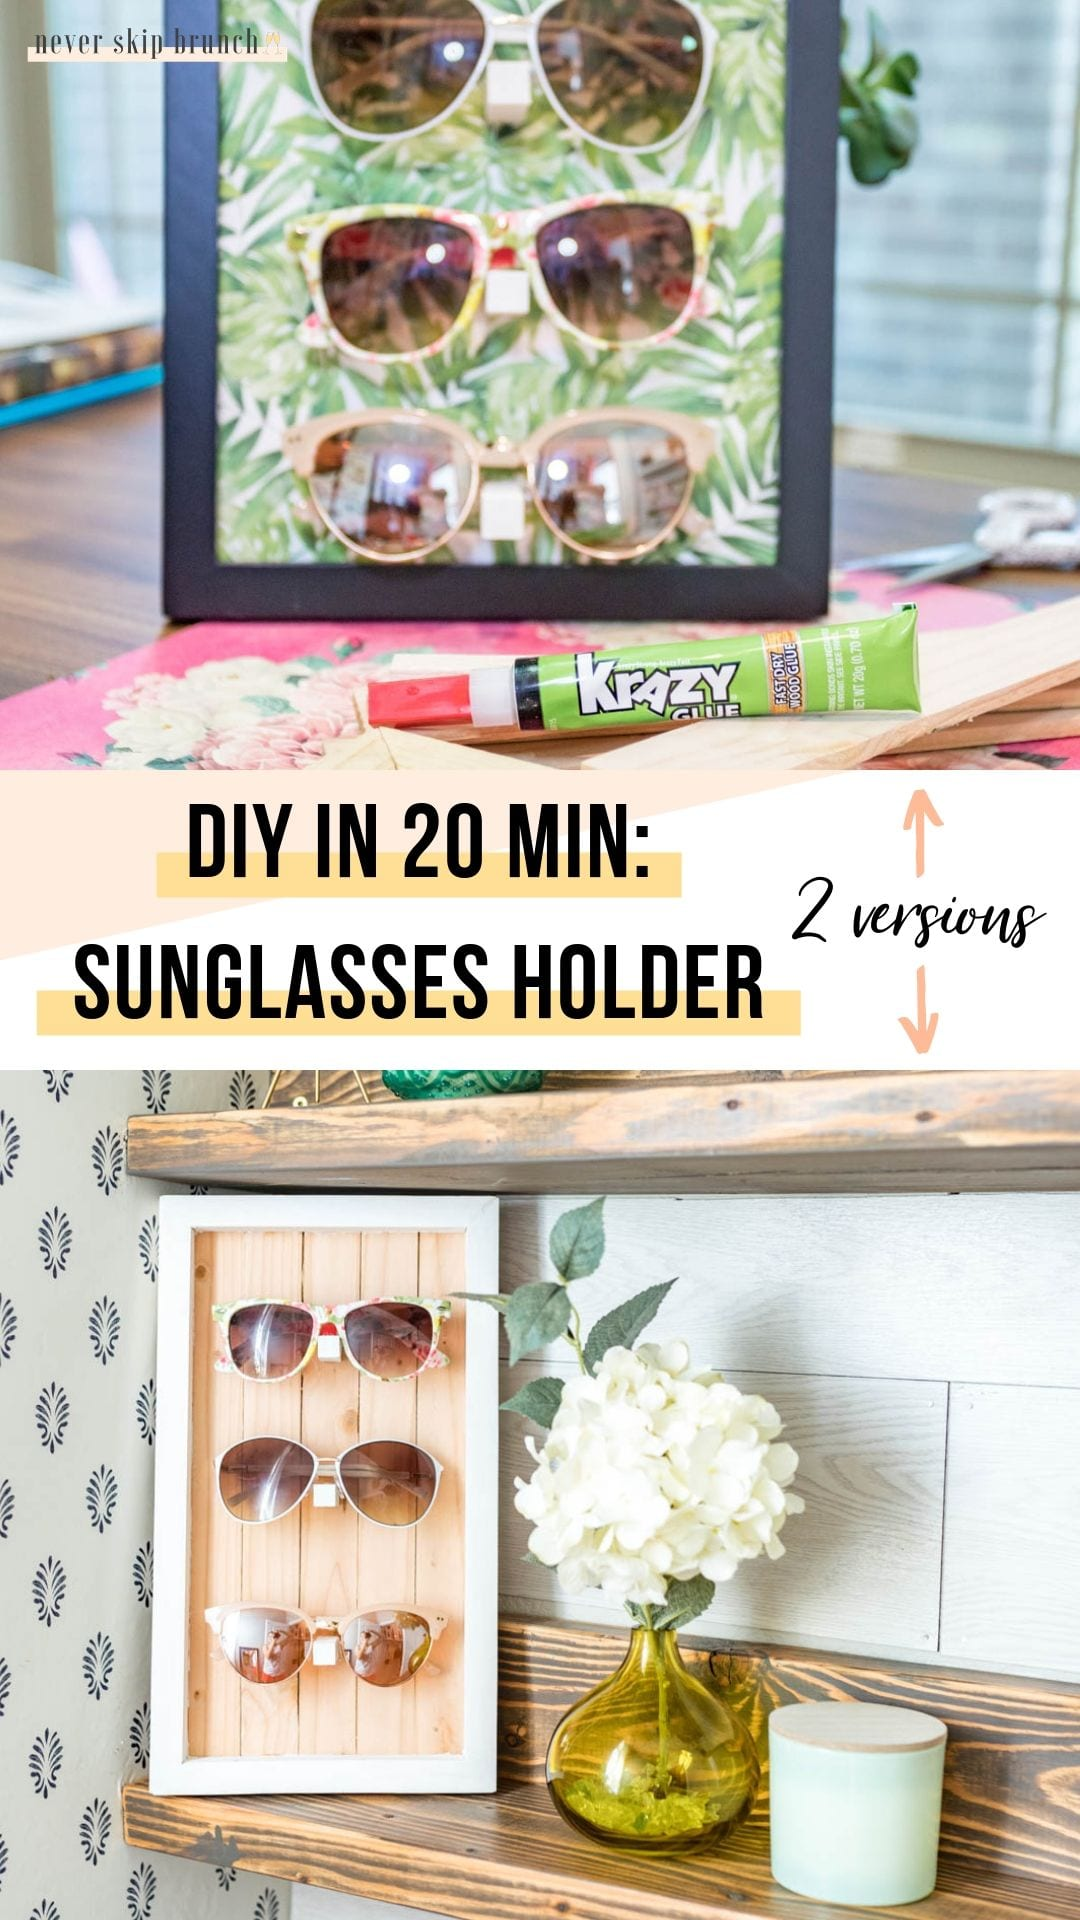 NO POWER TOOLS NEEDED!! sunglasses holder diy | sunglasses holder diy display | sunglasses holder wall | sunglasses holder wall storage ideas | diy sunglass display | siy sunglass holder | home decor | DIY Home decor ideas | Never Skip Brunch by Cara Newhart | #decor #diy #summer #neverskipbrunch